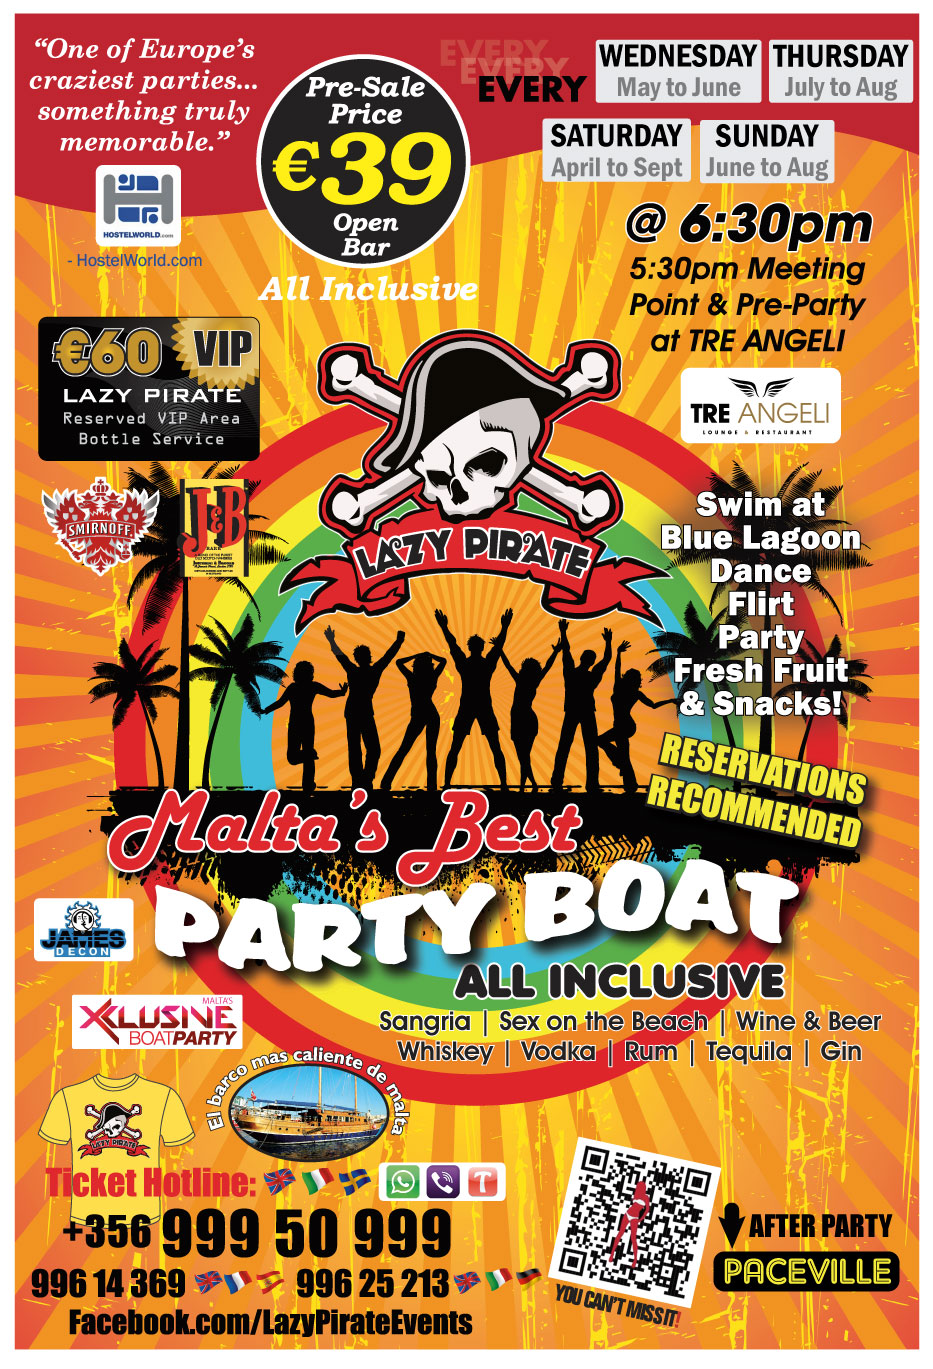 Lazy Pirate Party Boat 2016 flyer